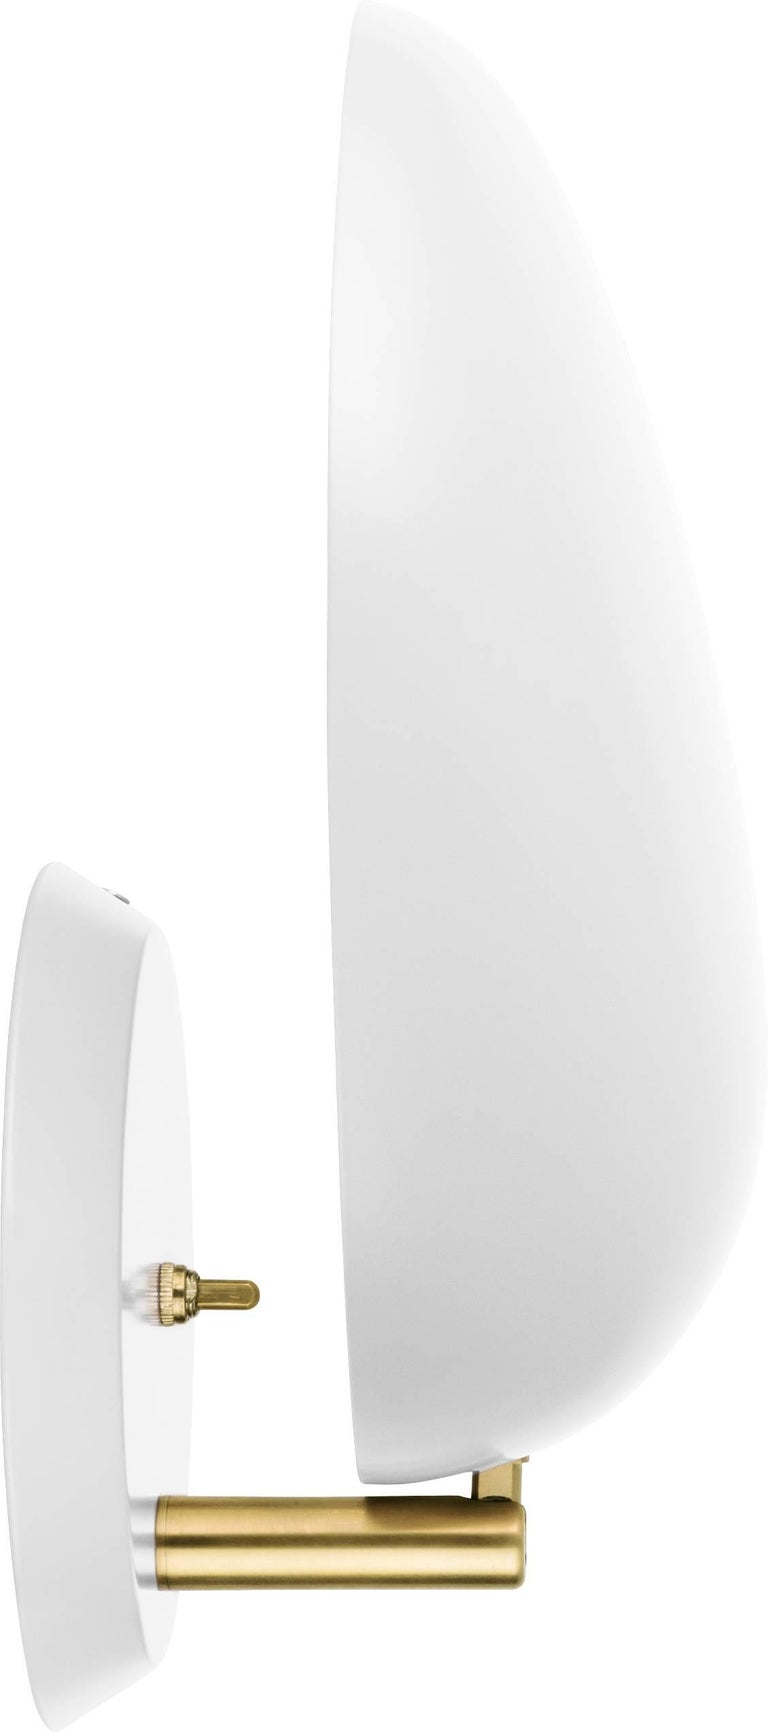 Greta Magnusson Grossman 'Cobra' wall lamp in white. Designed in 1950 by Grossman, this is an authorized re-edition by GUBI of Denmark who meticulously reproduces her work with scrupulous attention to detail and materials that are faithful to the